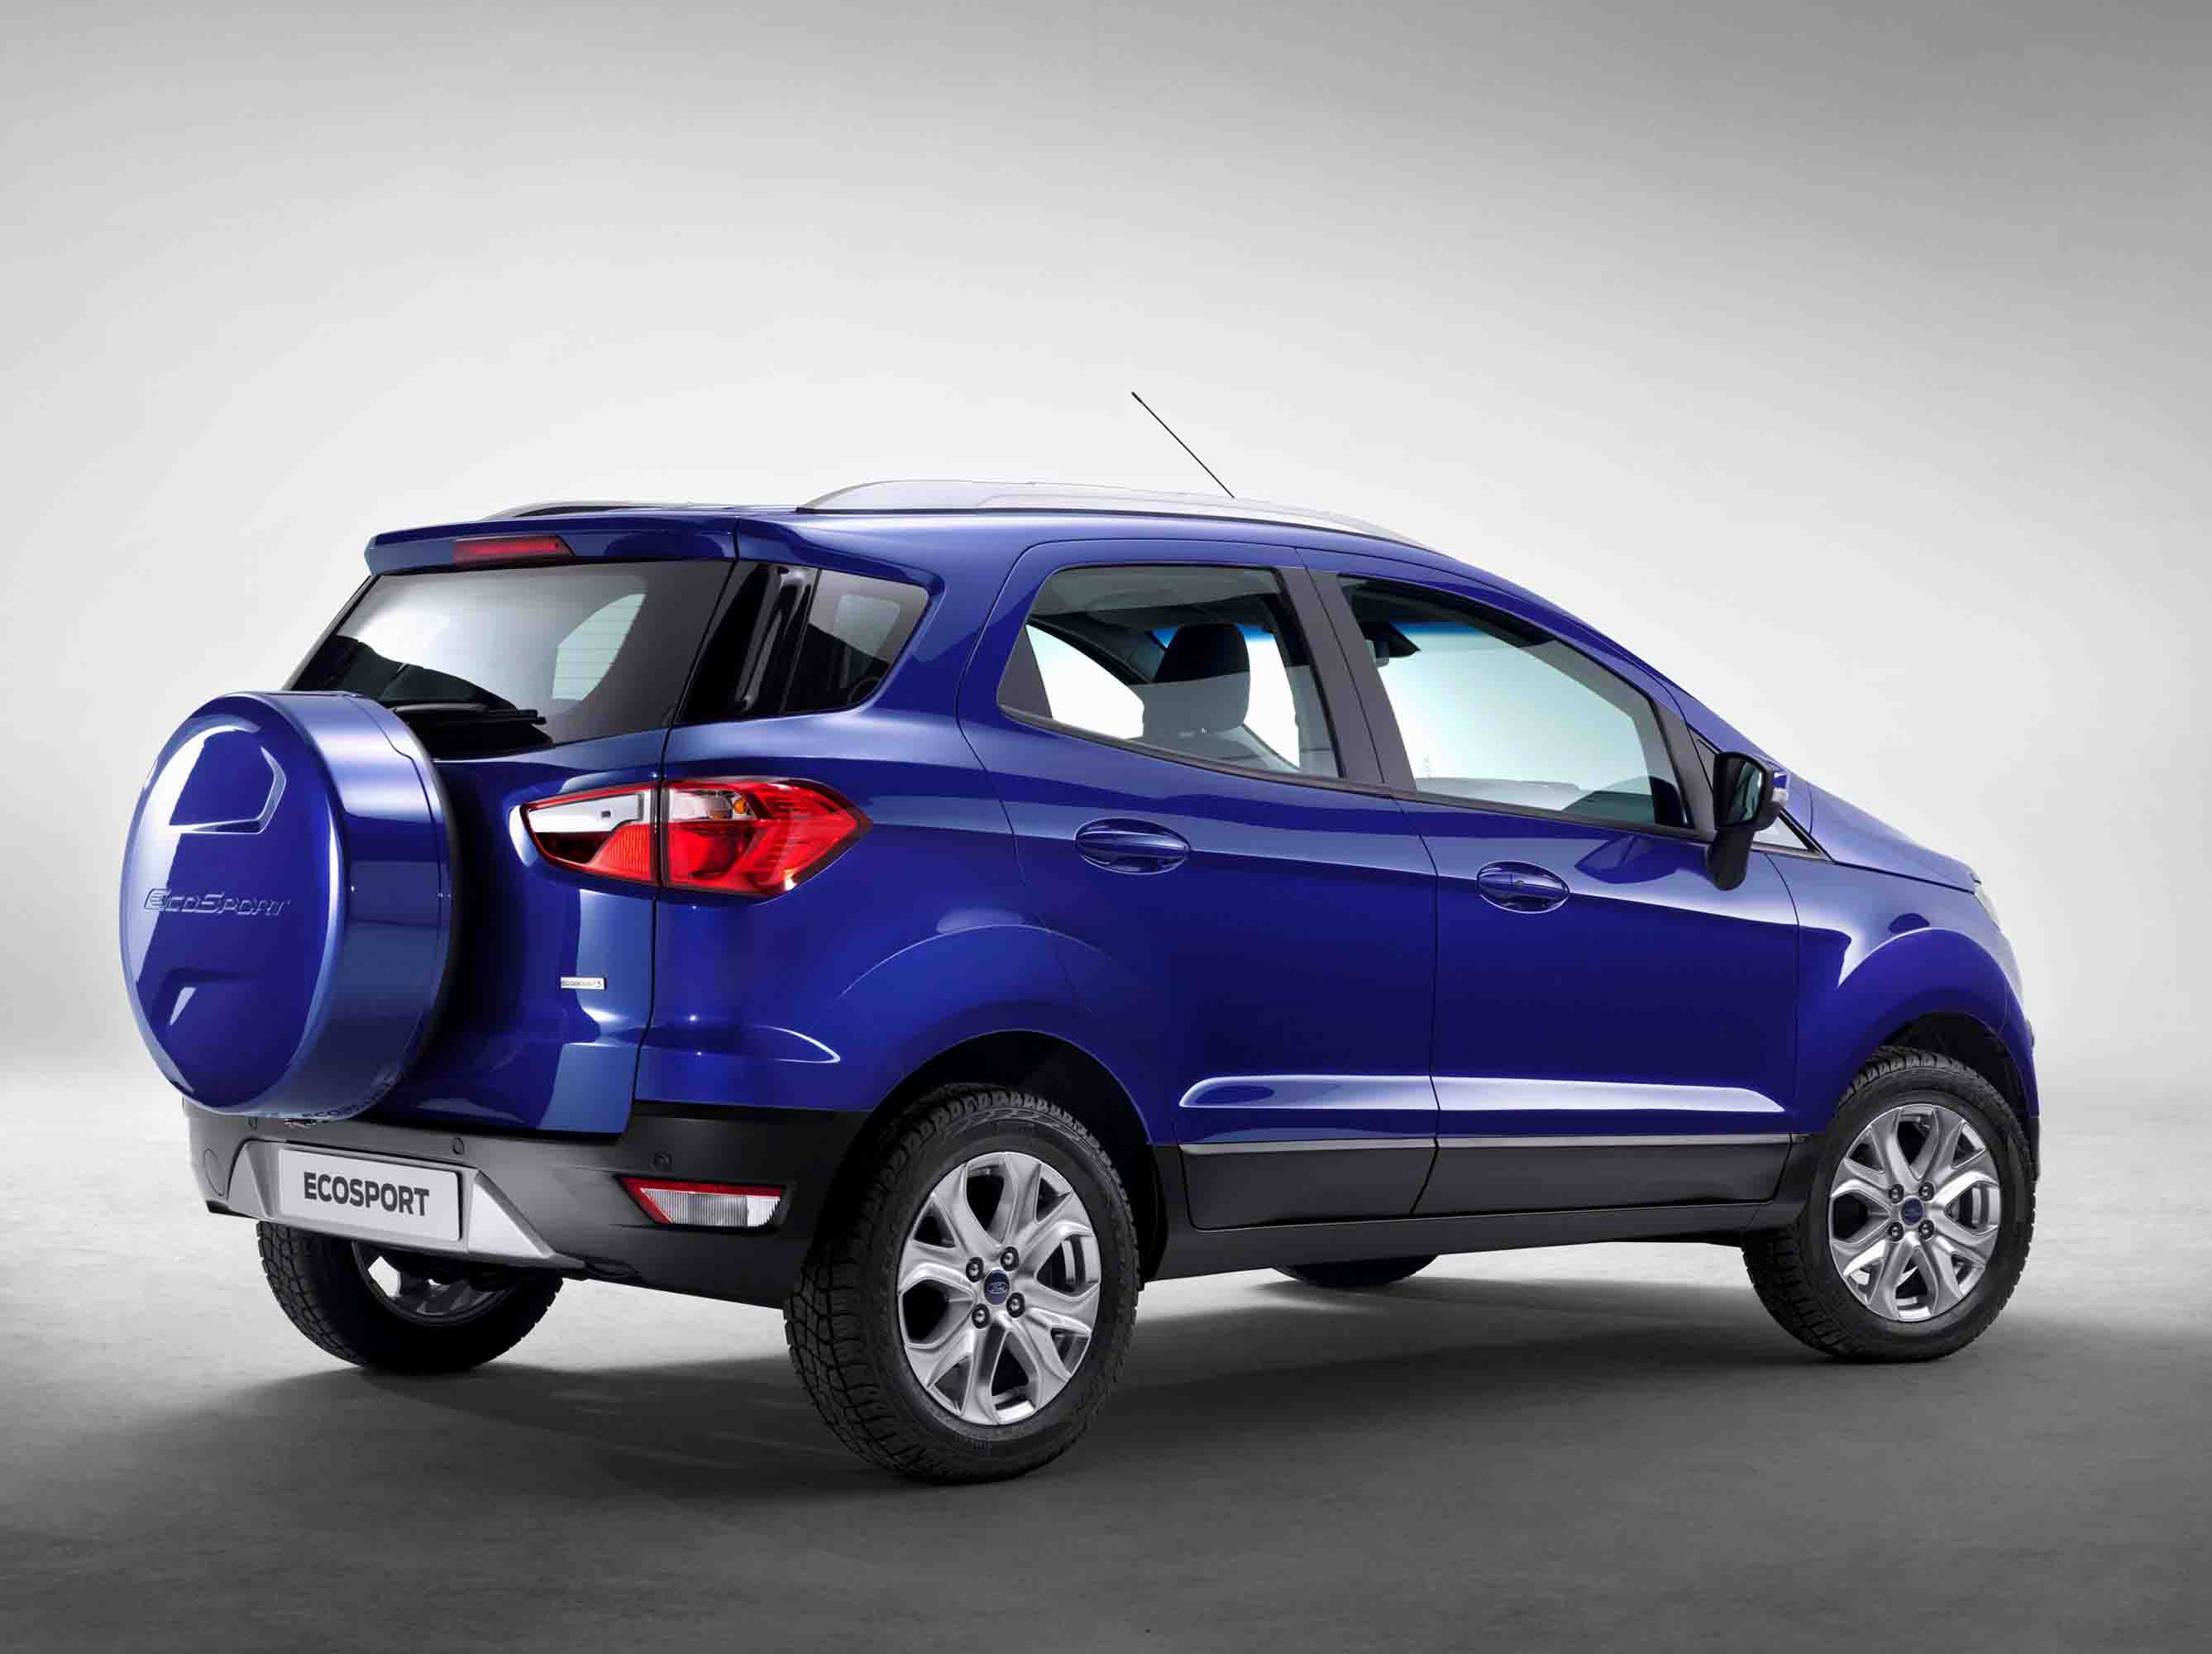 Image Result For Ford Ecosport Mileage